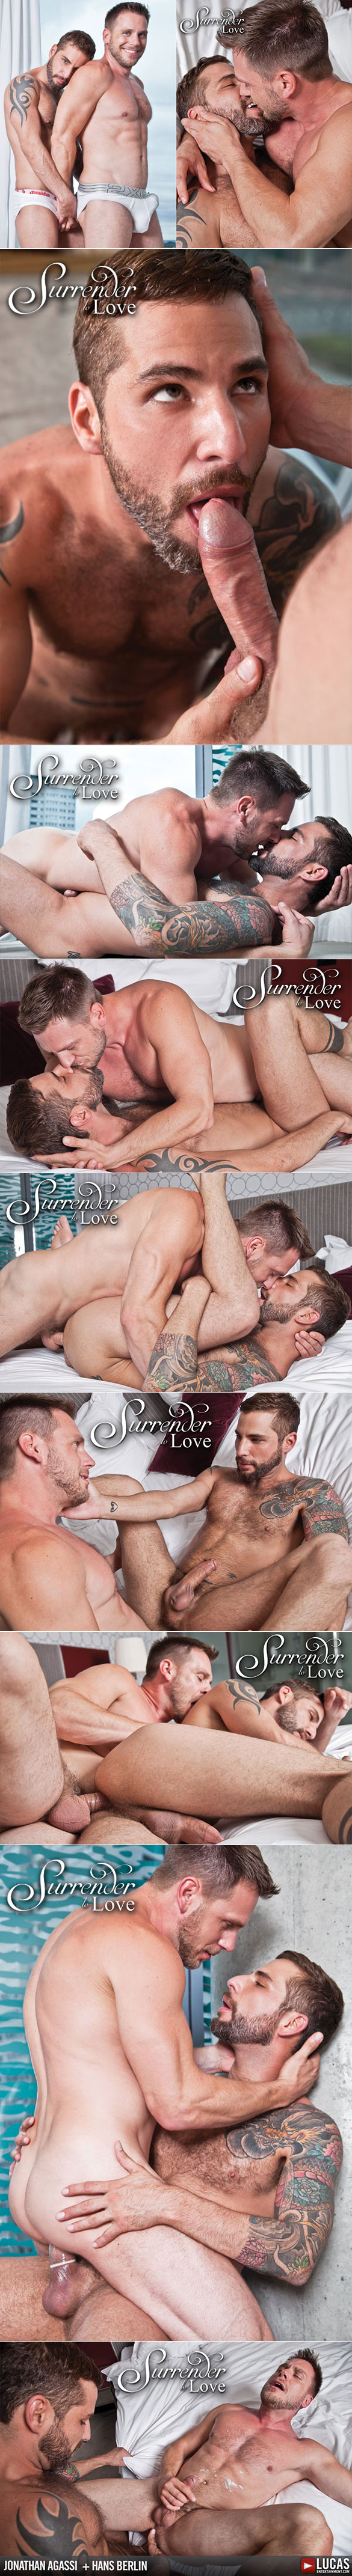 "Lucas Entertainment: Jonathan Agassi and Hans Berlin fuck each other in ""Surrender to Love"""